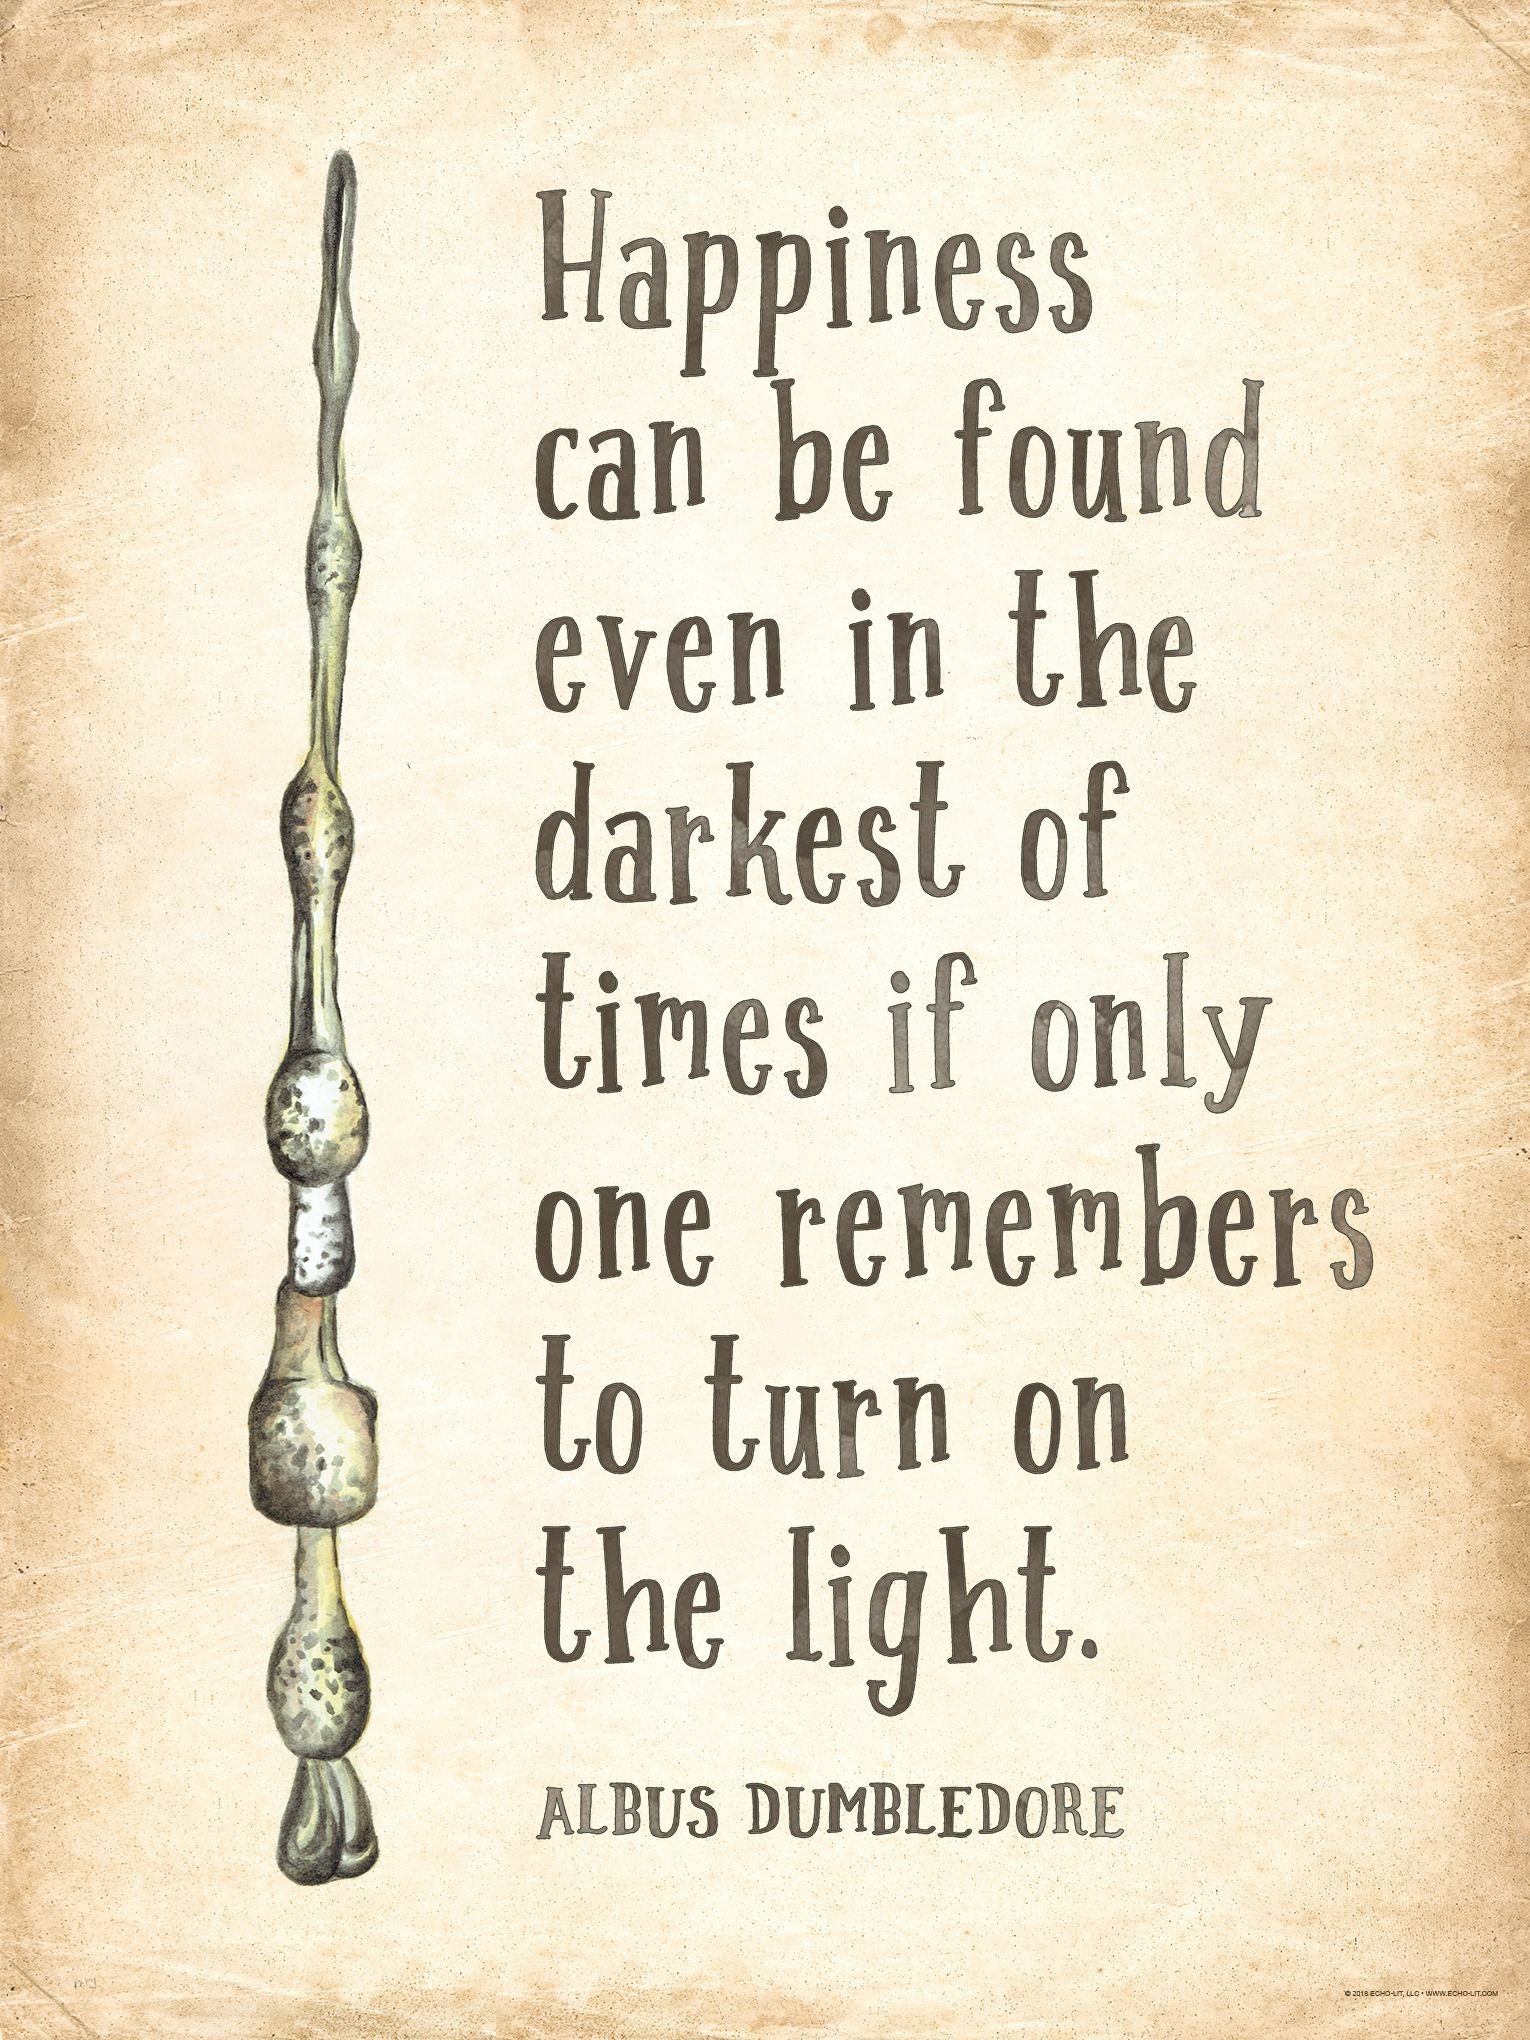 Magische Harry Potter Zitate Fur Meine Tochter Fur Harry Magische Meine Potterz Harry Potter Quotes Inspirational Harry Potter Book Quotes Hp Quotes